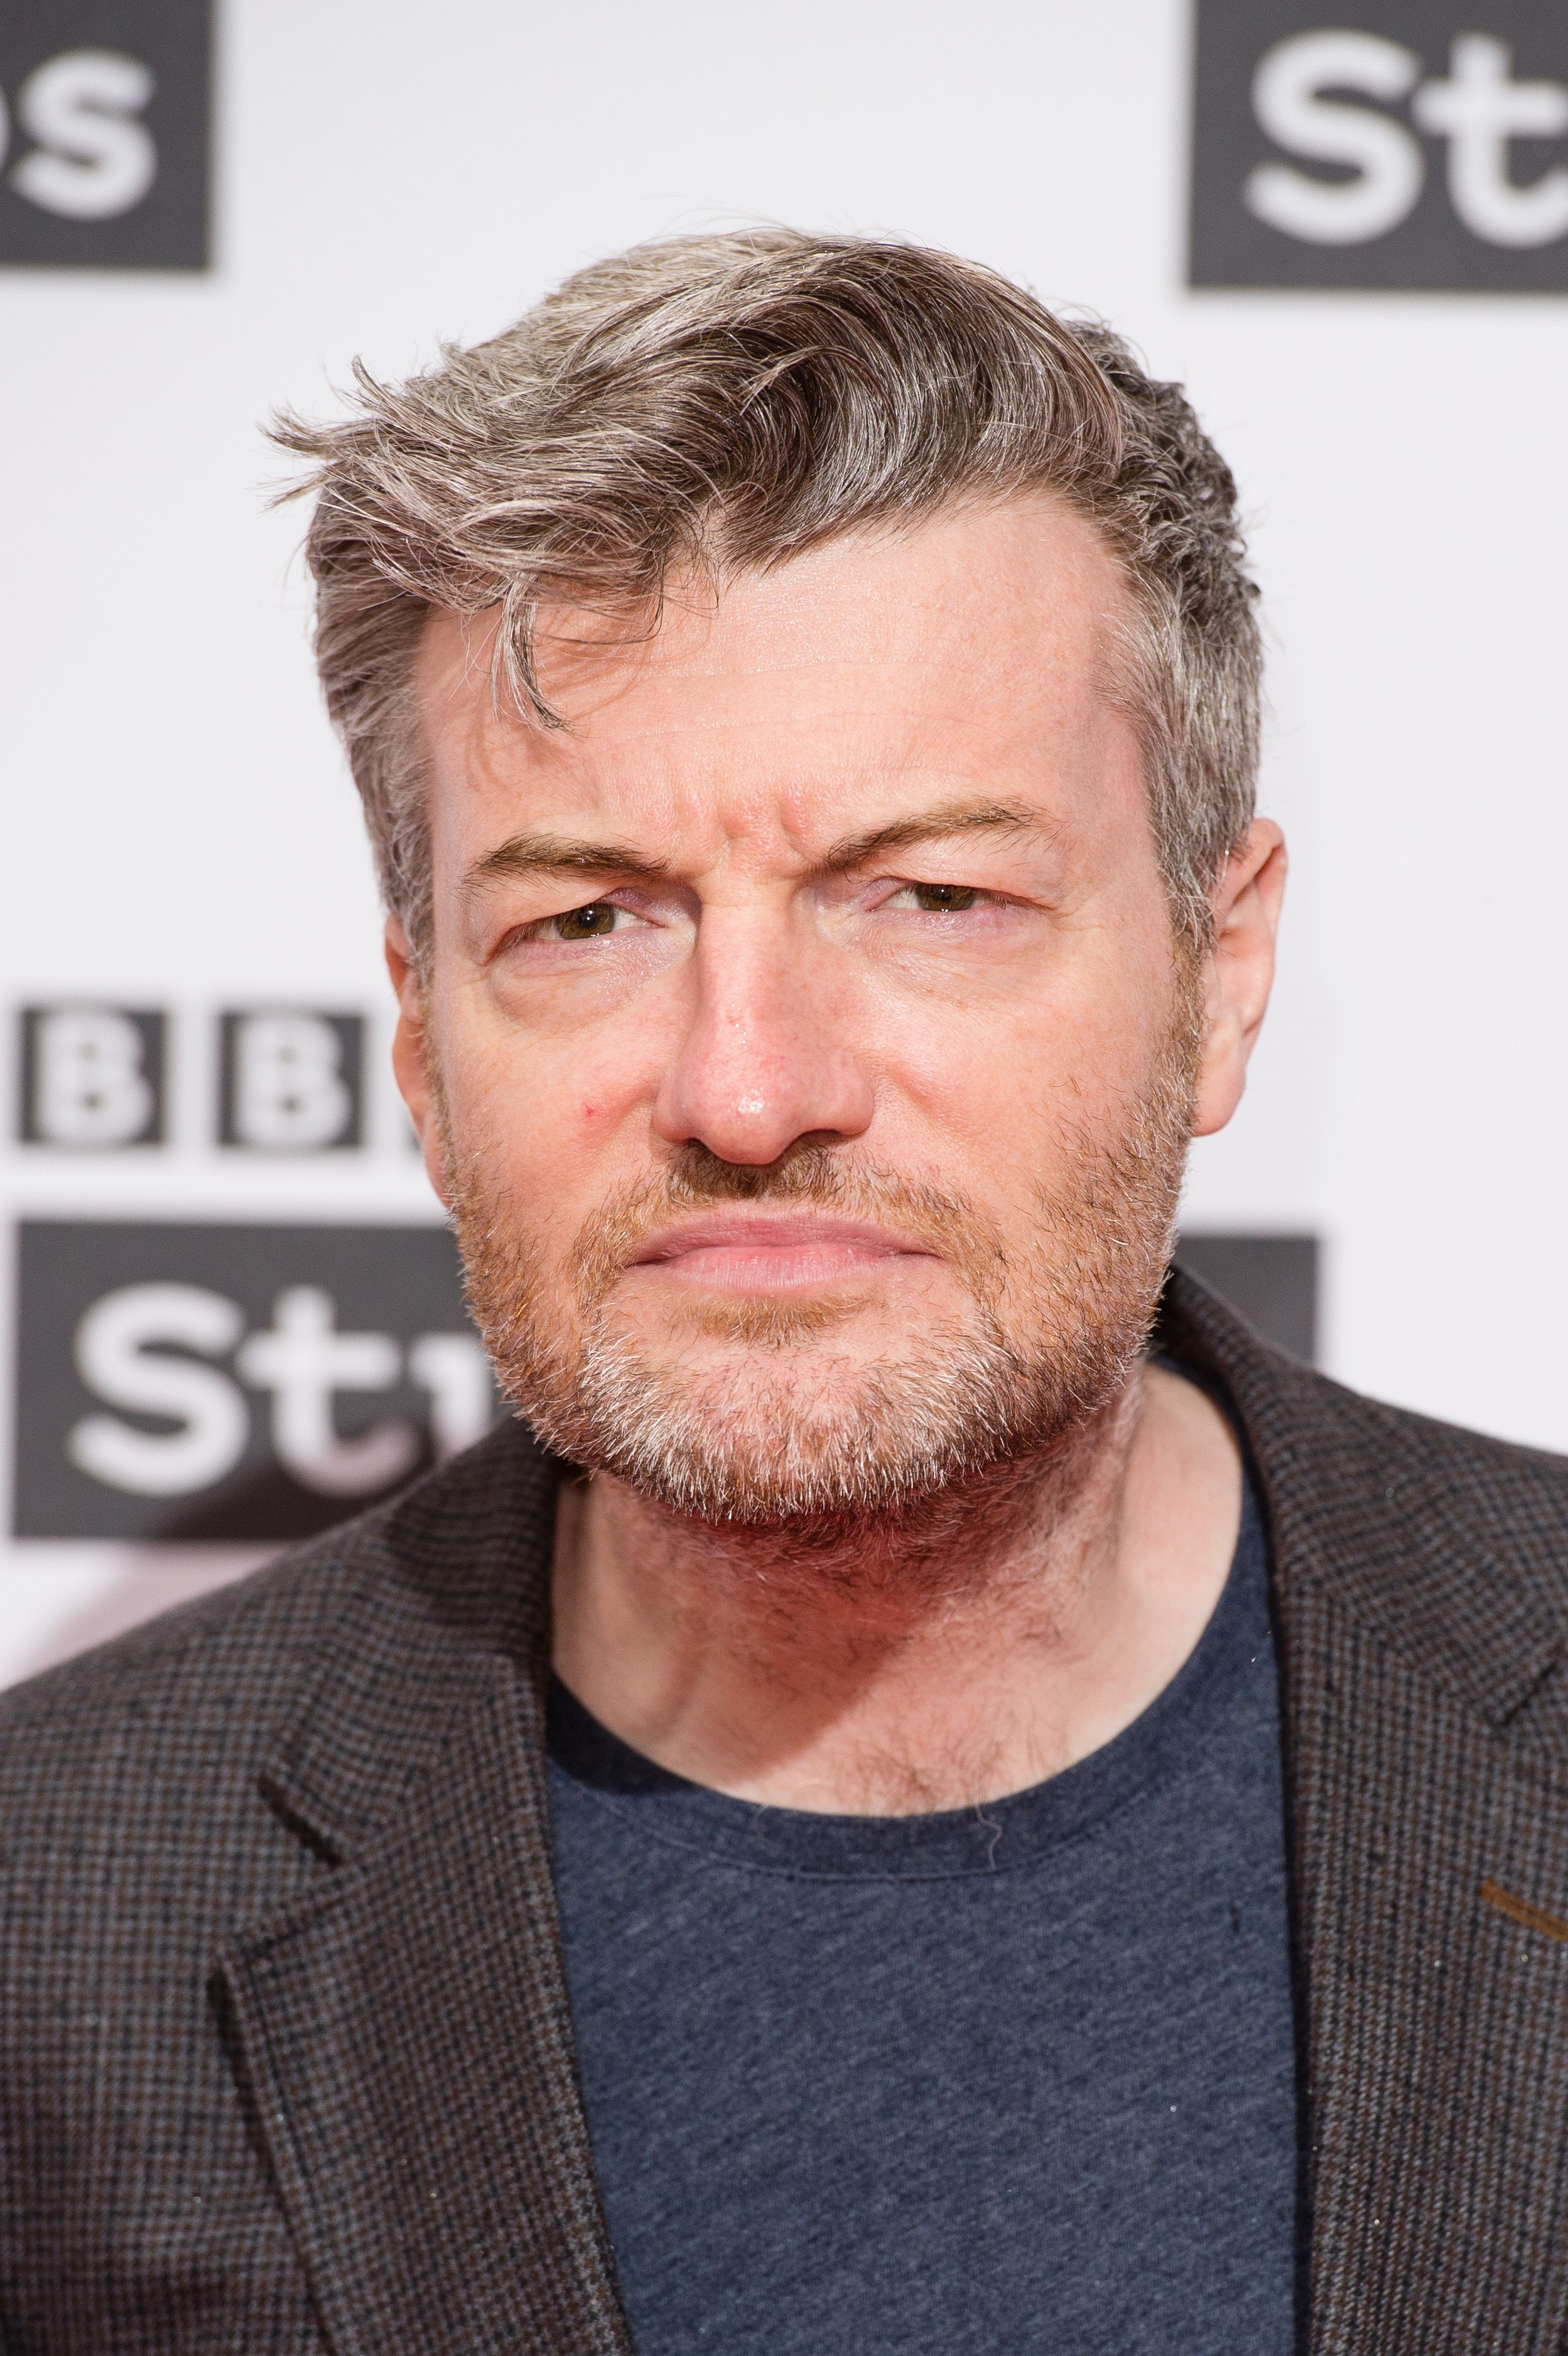 Black Mirror's Charlie Brooker on the future of social media